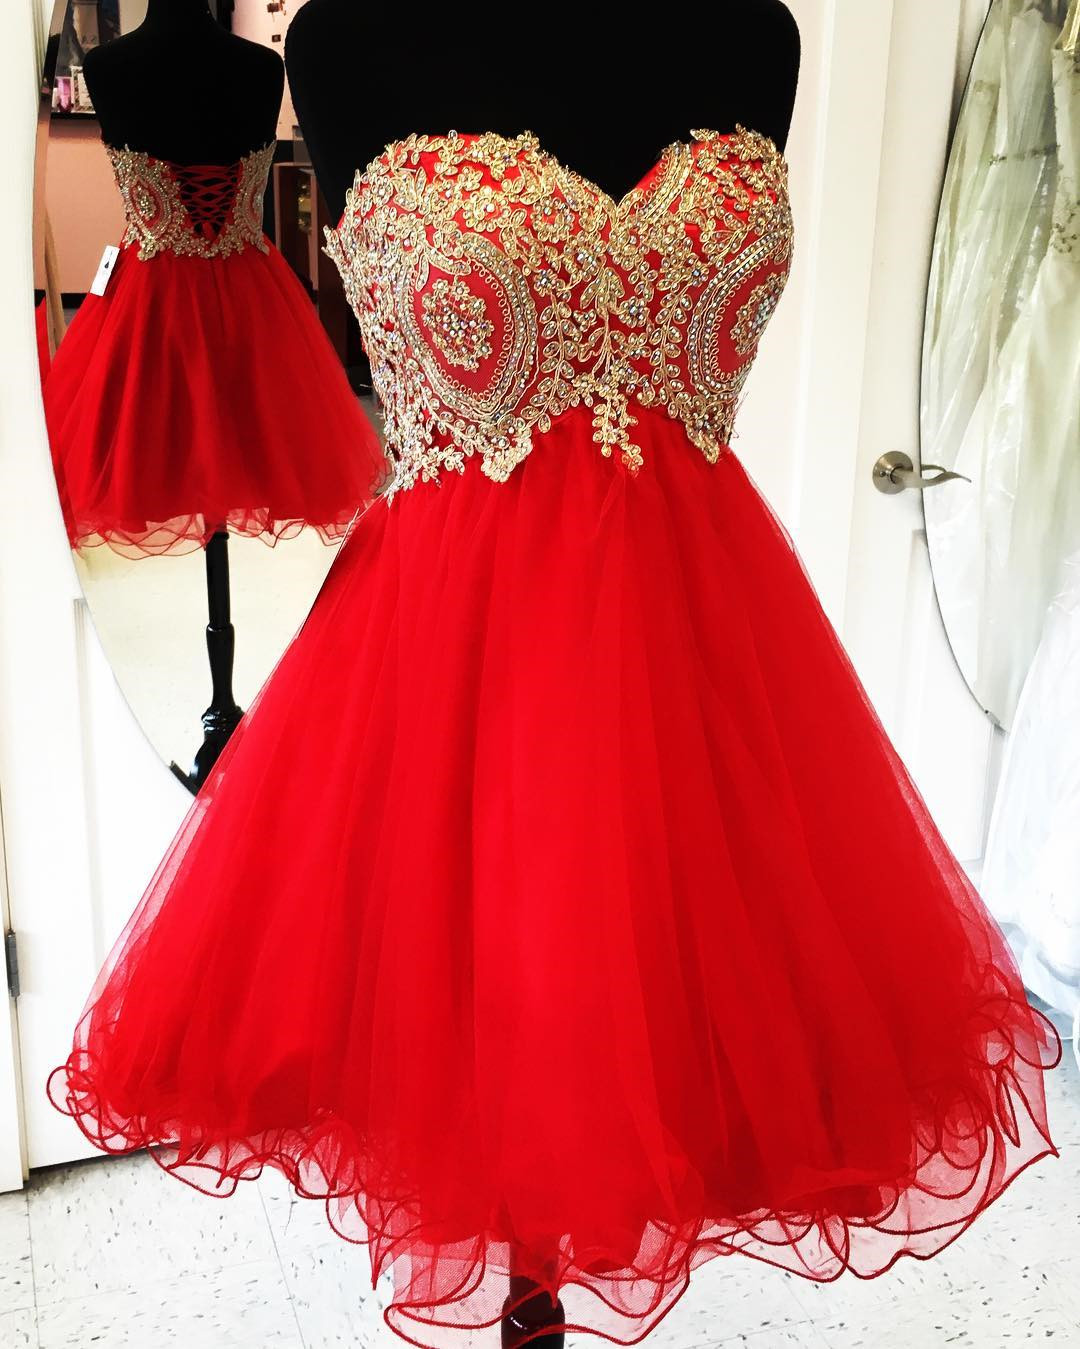 661e70e98456 Gold Lace Appliques Short Red Homecoming Dresses 2017 Cocktail Party Dress,Graduation  Dresses,Short Prom Gowns